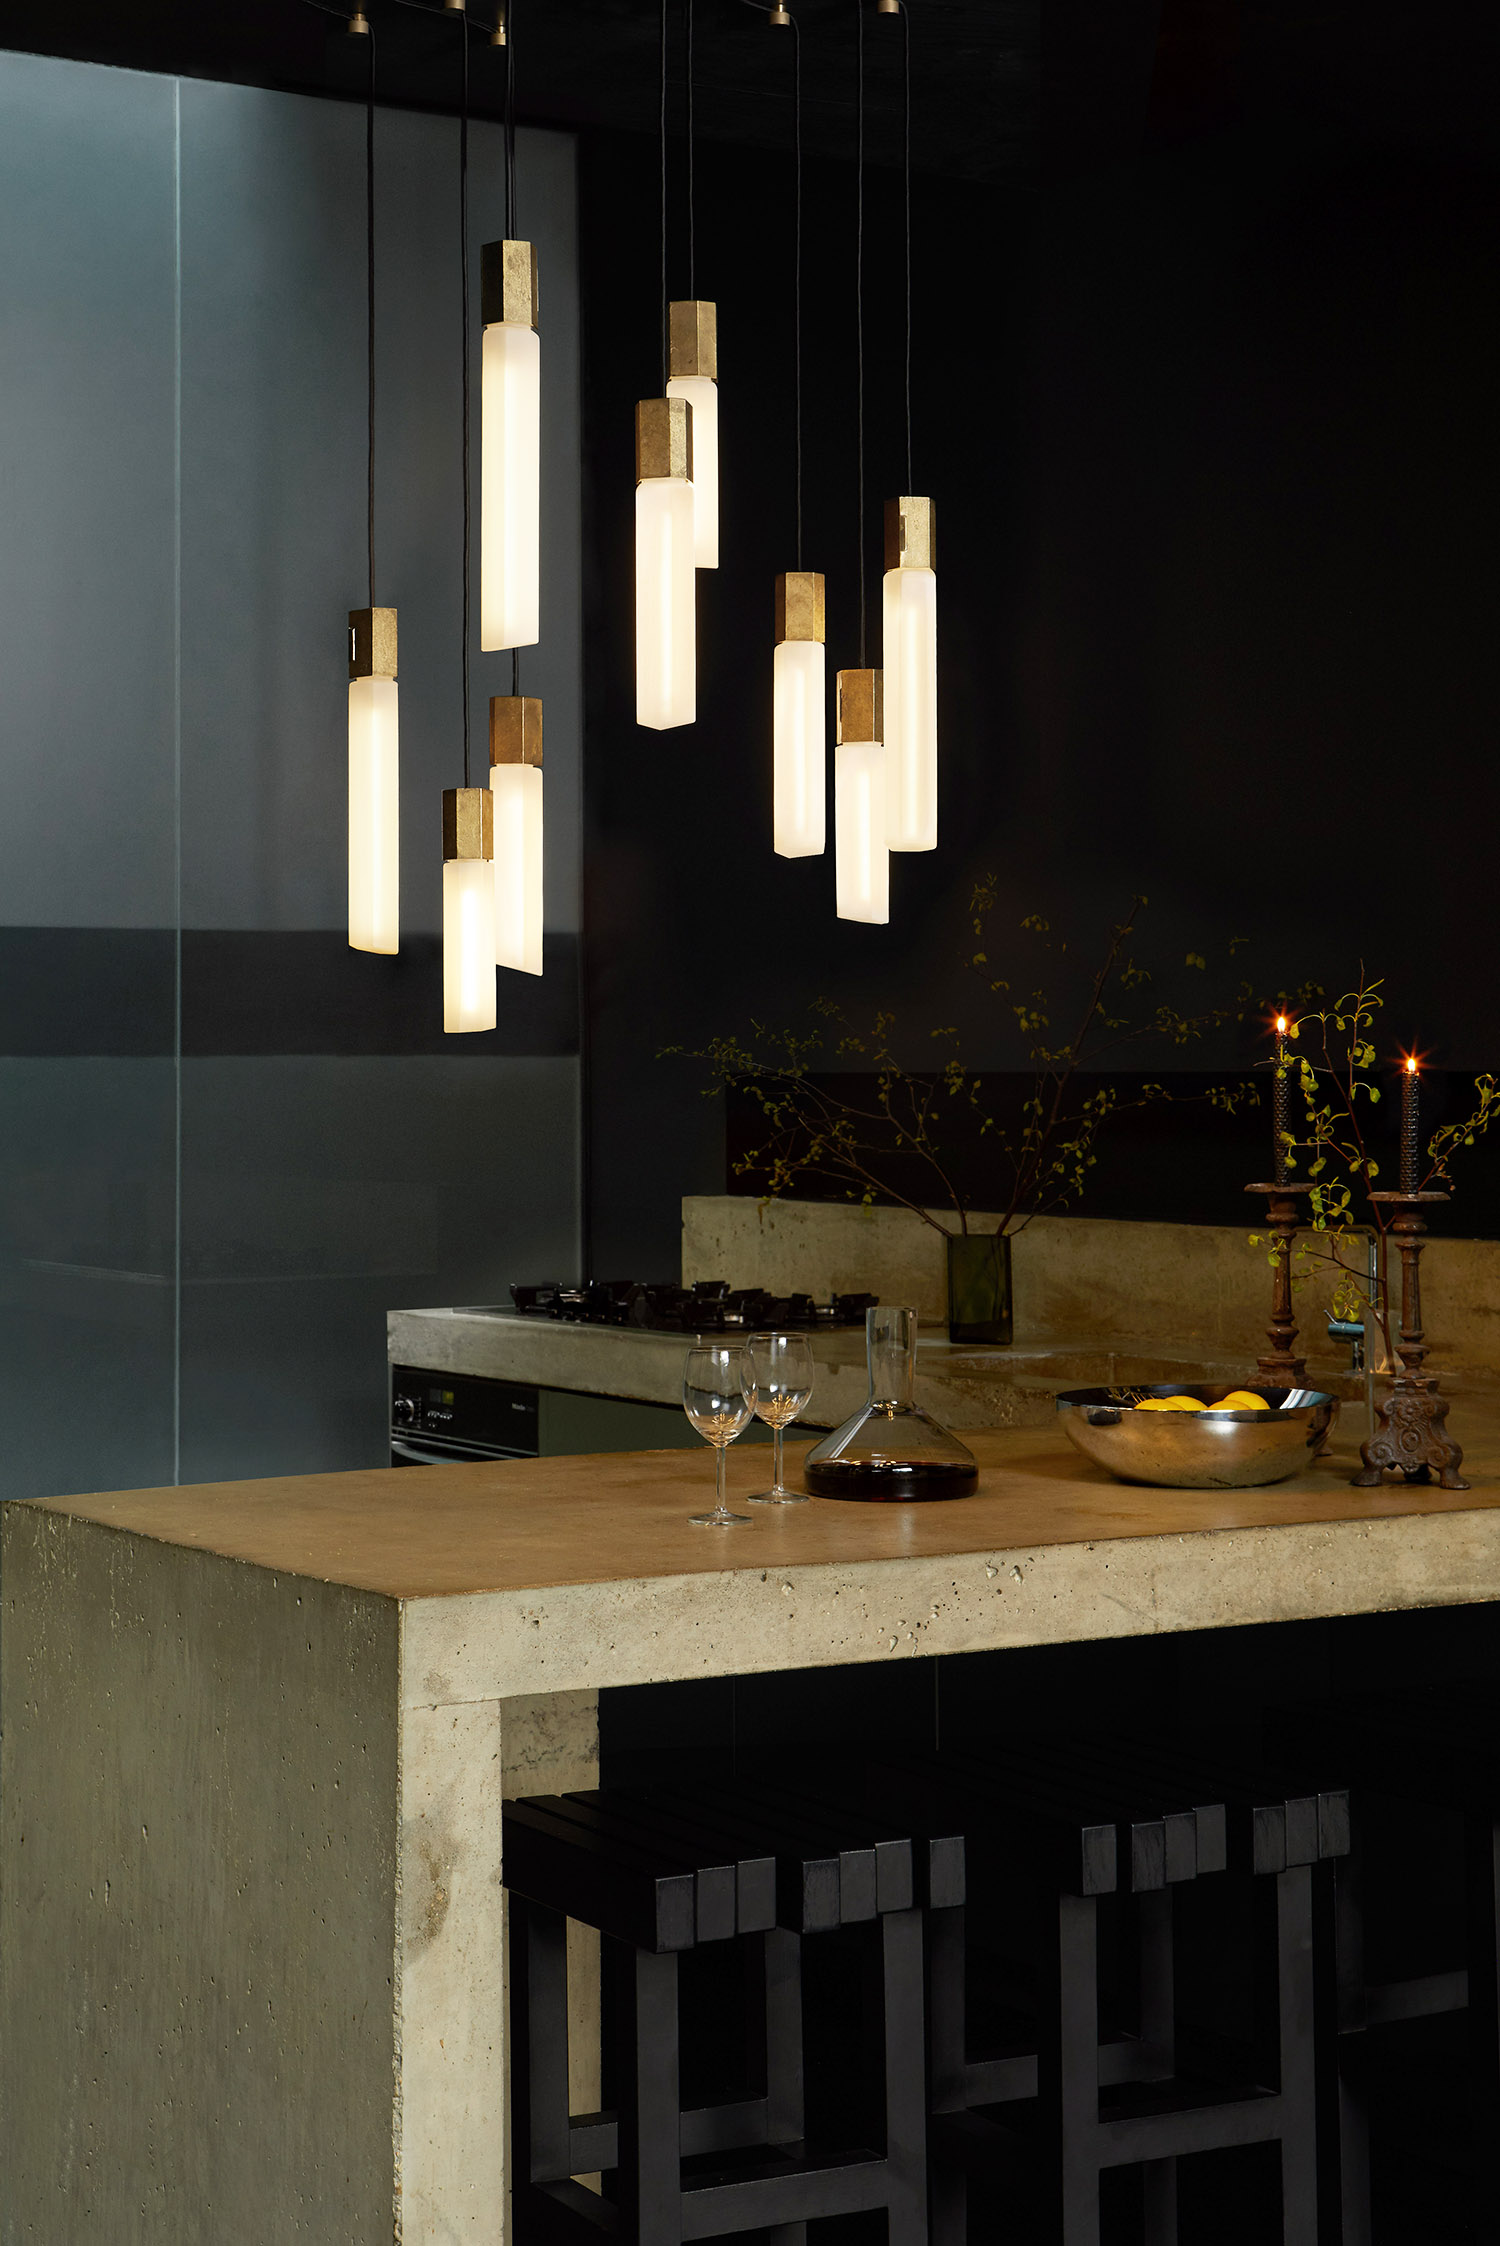 Basalt Ceiling Lamp - <p>Inspired by the thousands of extruded basalt columns that make up the Giant's Causeway, Basalt unites sand-cast solid brass and mouth-blown glass to evoke nature's magnitude. The Basalt Ceiling Light comprises three translucent matte borosilicate glass bulbs and textured pendants, each in their own dramatic size and length - suspended from an elegantly polished brass ceiling rose. </p>  | Matter of Stuff